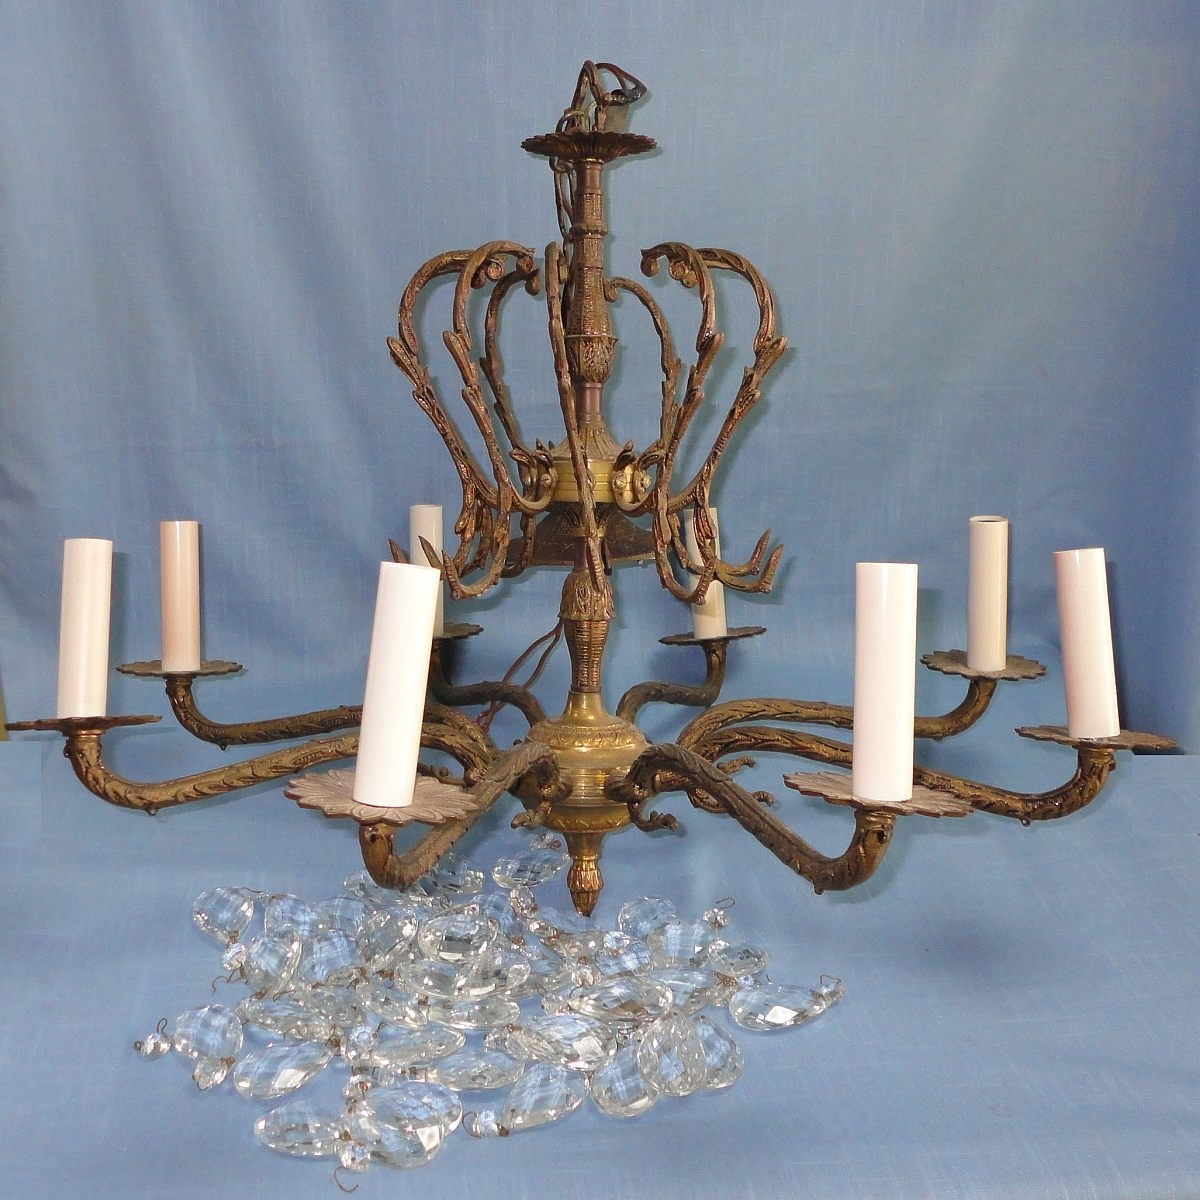 Antique Furniture Regarding Latest Old Brass Chandeliers (View 3 of 20)